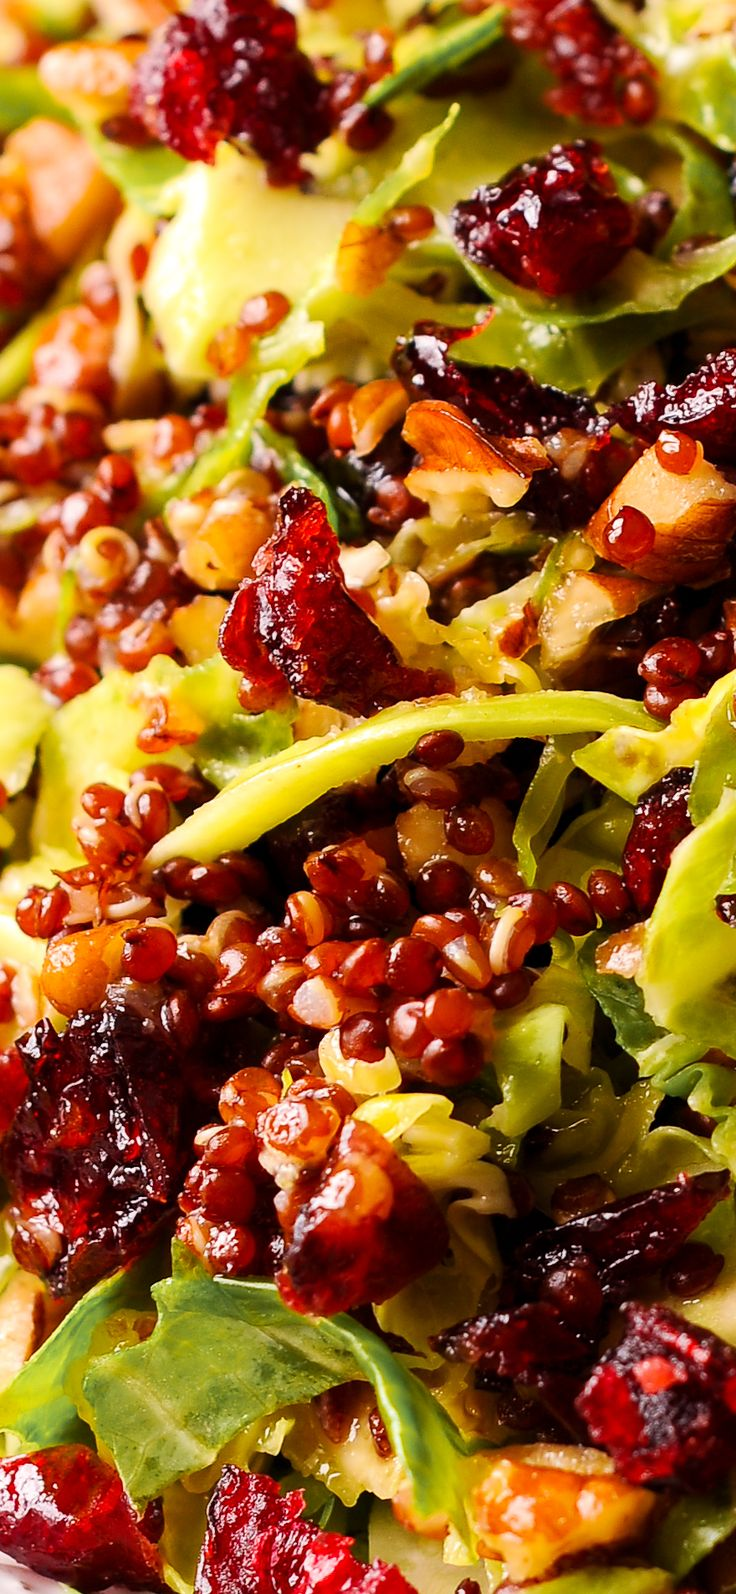 Warm Quinoa and Brussels Sprout Salad  in Honey Mustard Vinaigrette is loaded with pecans and cranberries. Healthy salad, lots of nutrients, antioxidants, red quinoa, Dijon mustard, gluten free. #healthy #glutenfree